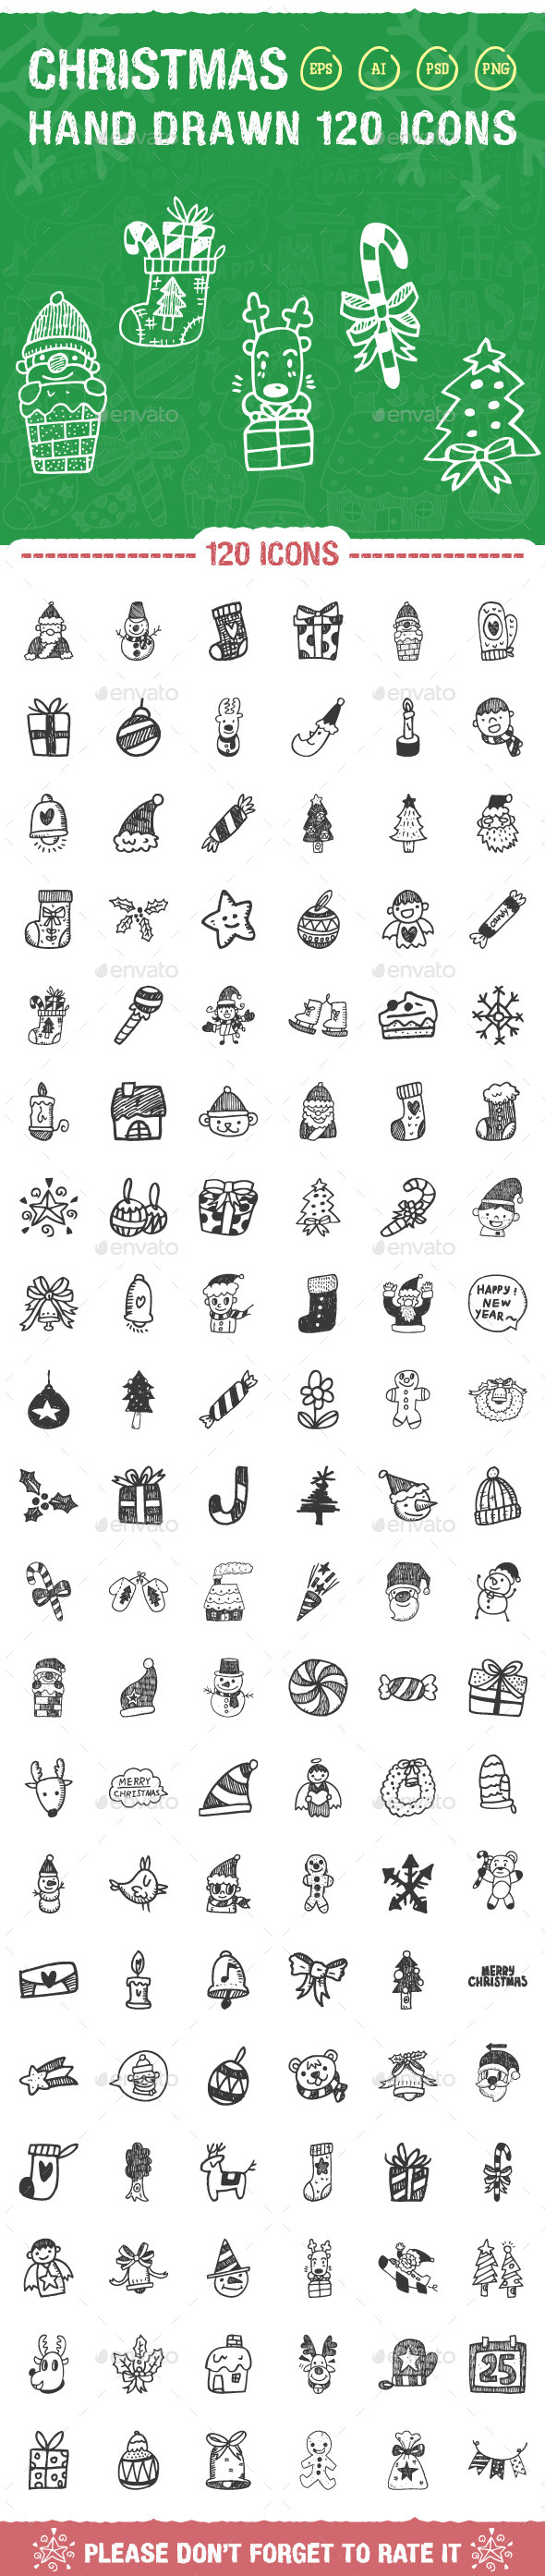 GraphicRiver 120 Hand Drawn Christmas Icons 9490223